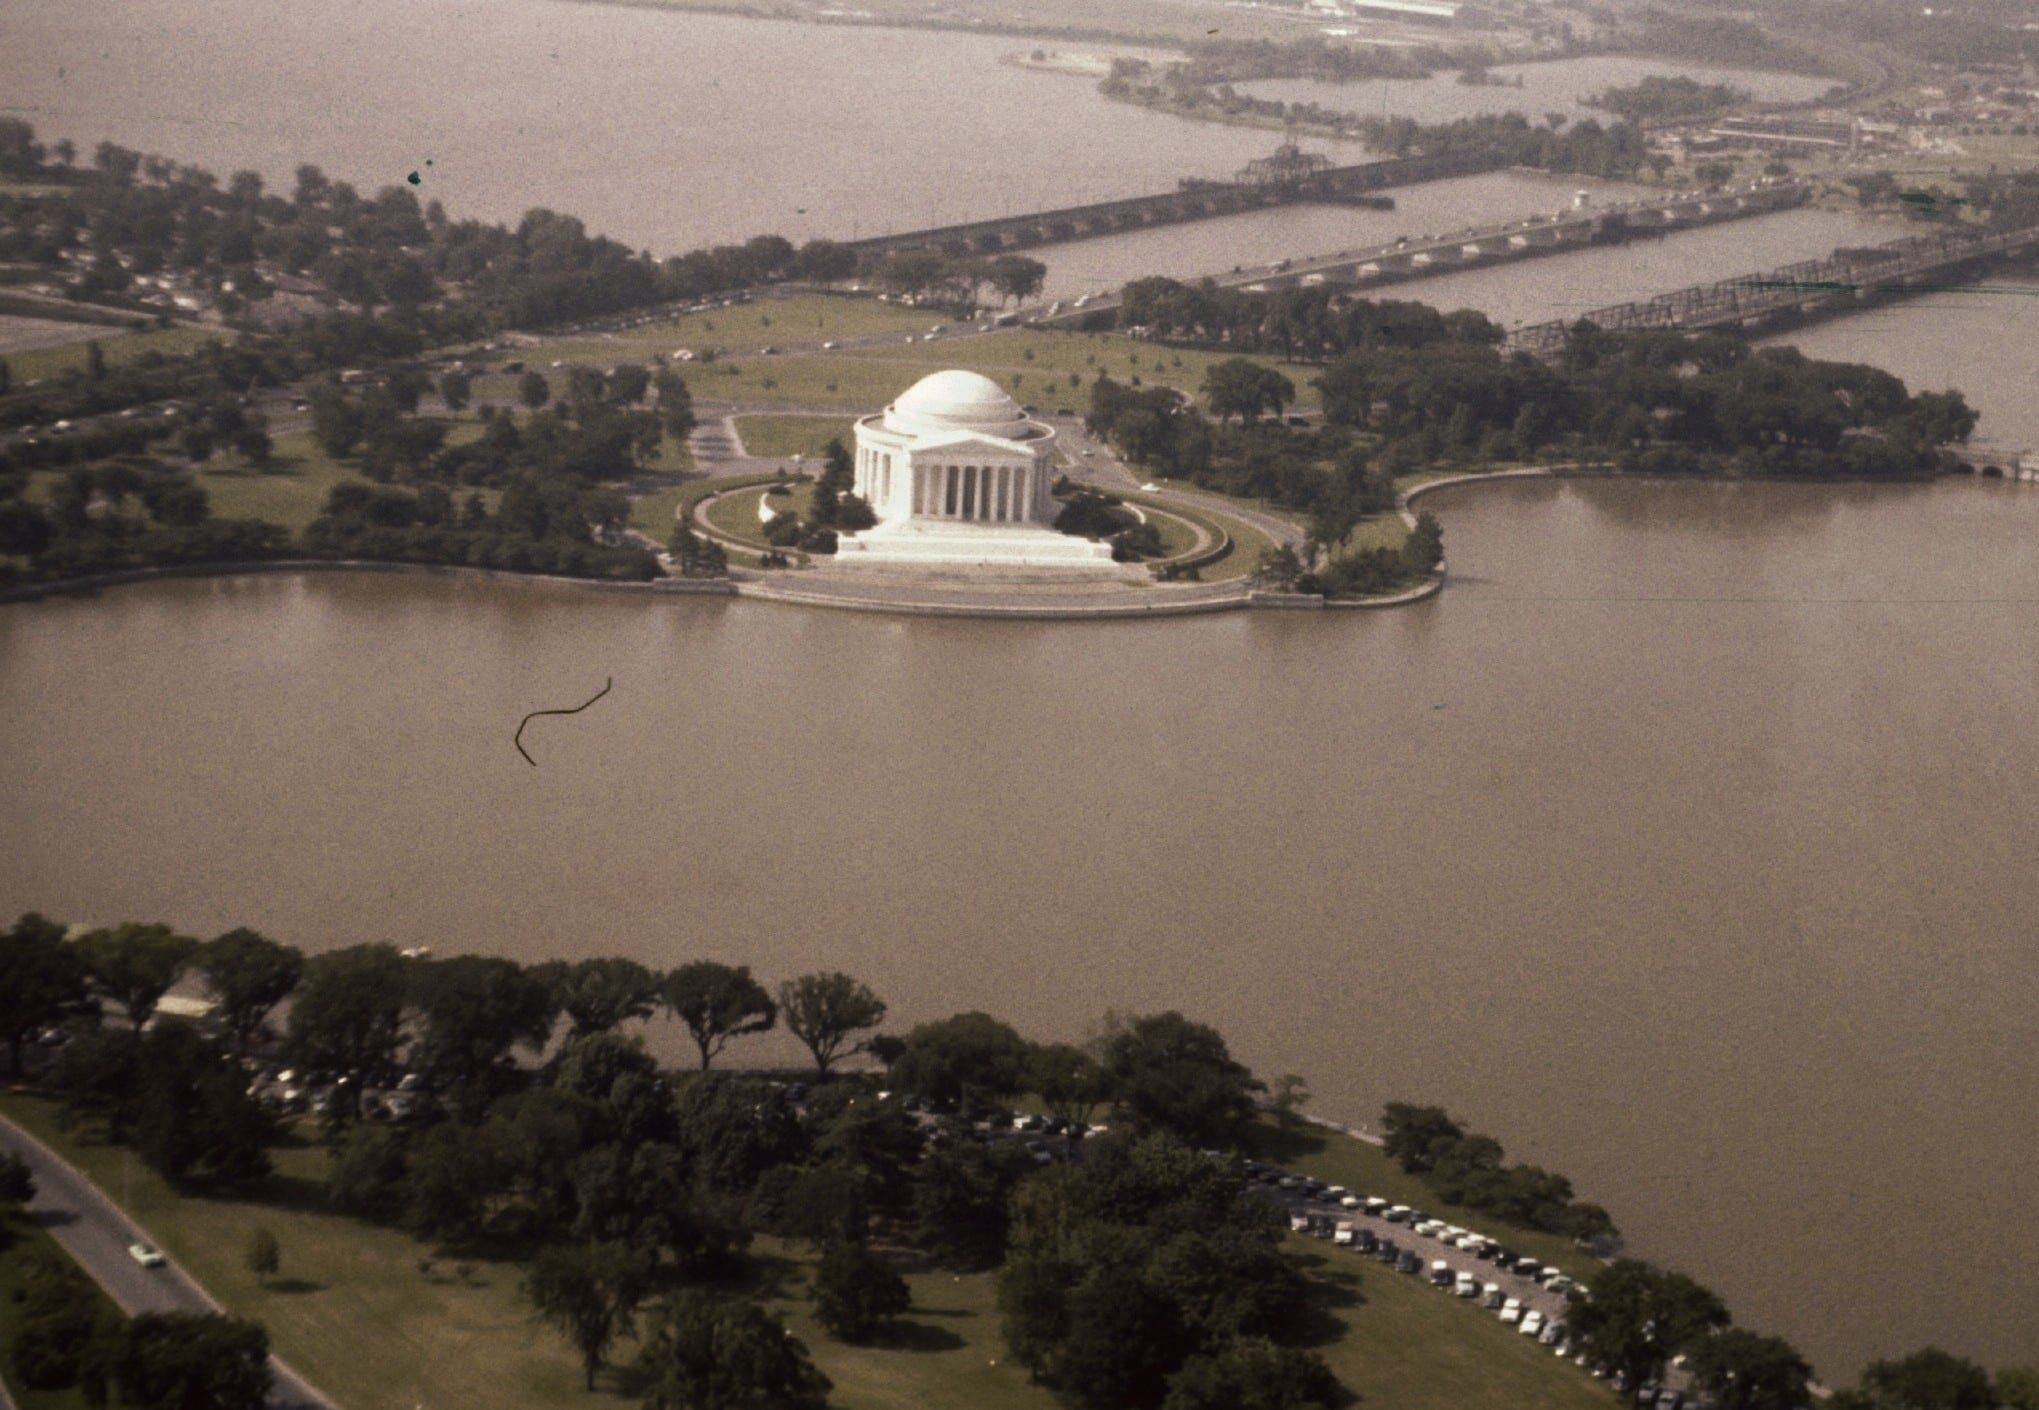 Aerial view of the Jefferson Memorial in 1956